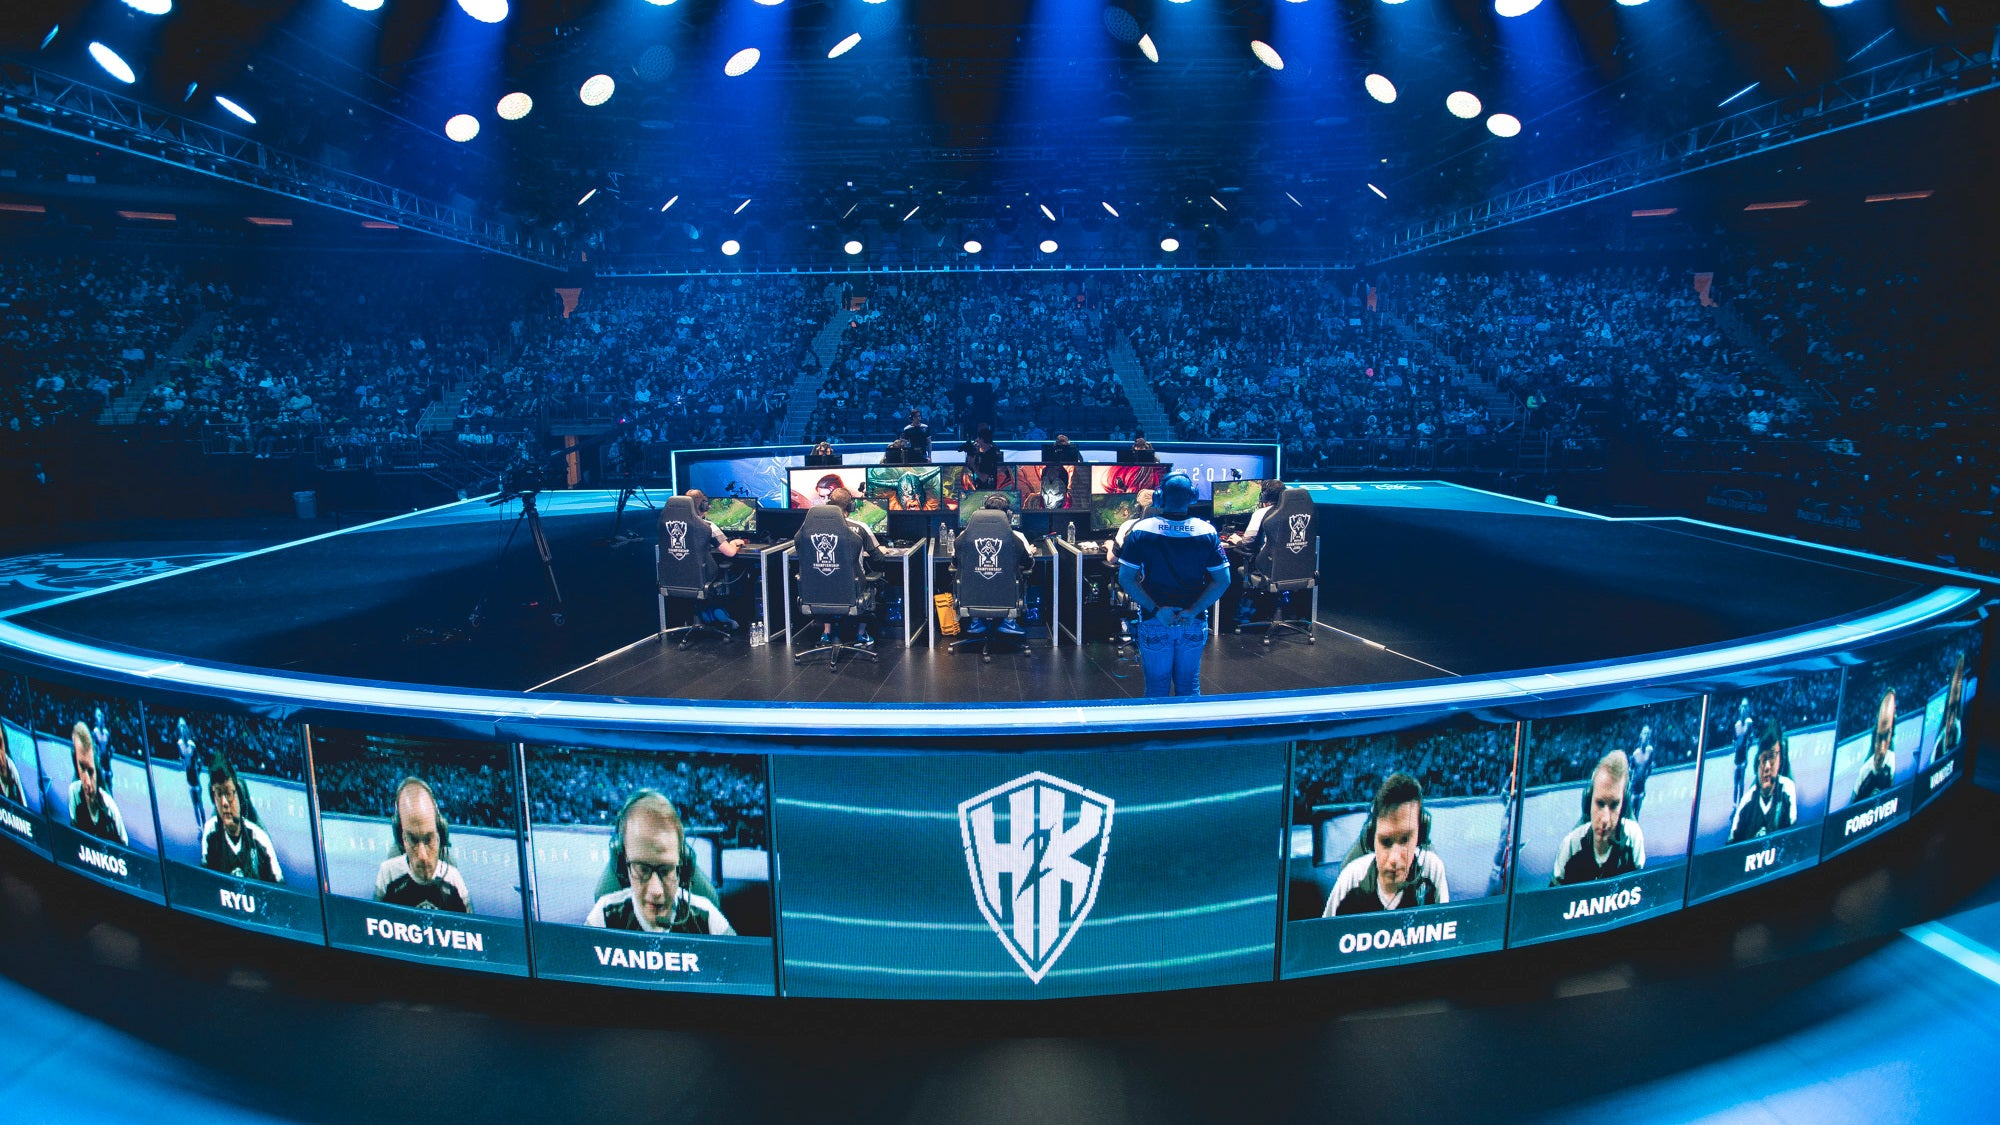 Pro League Of Legends Team Says It's Losing More Than $1.1 Million A Year